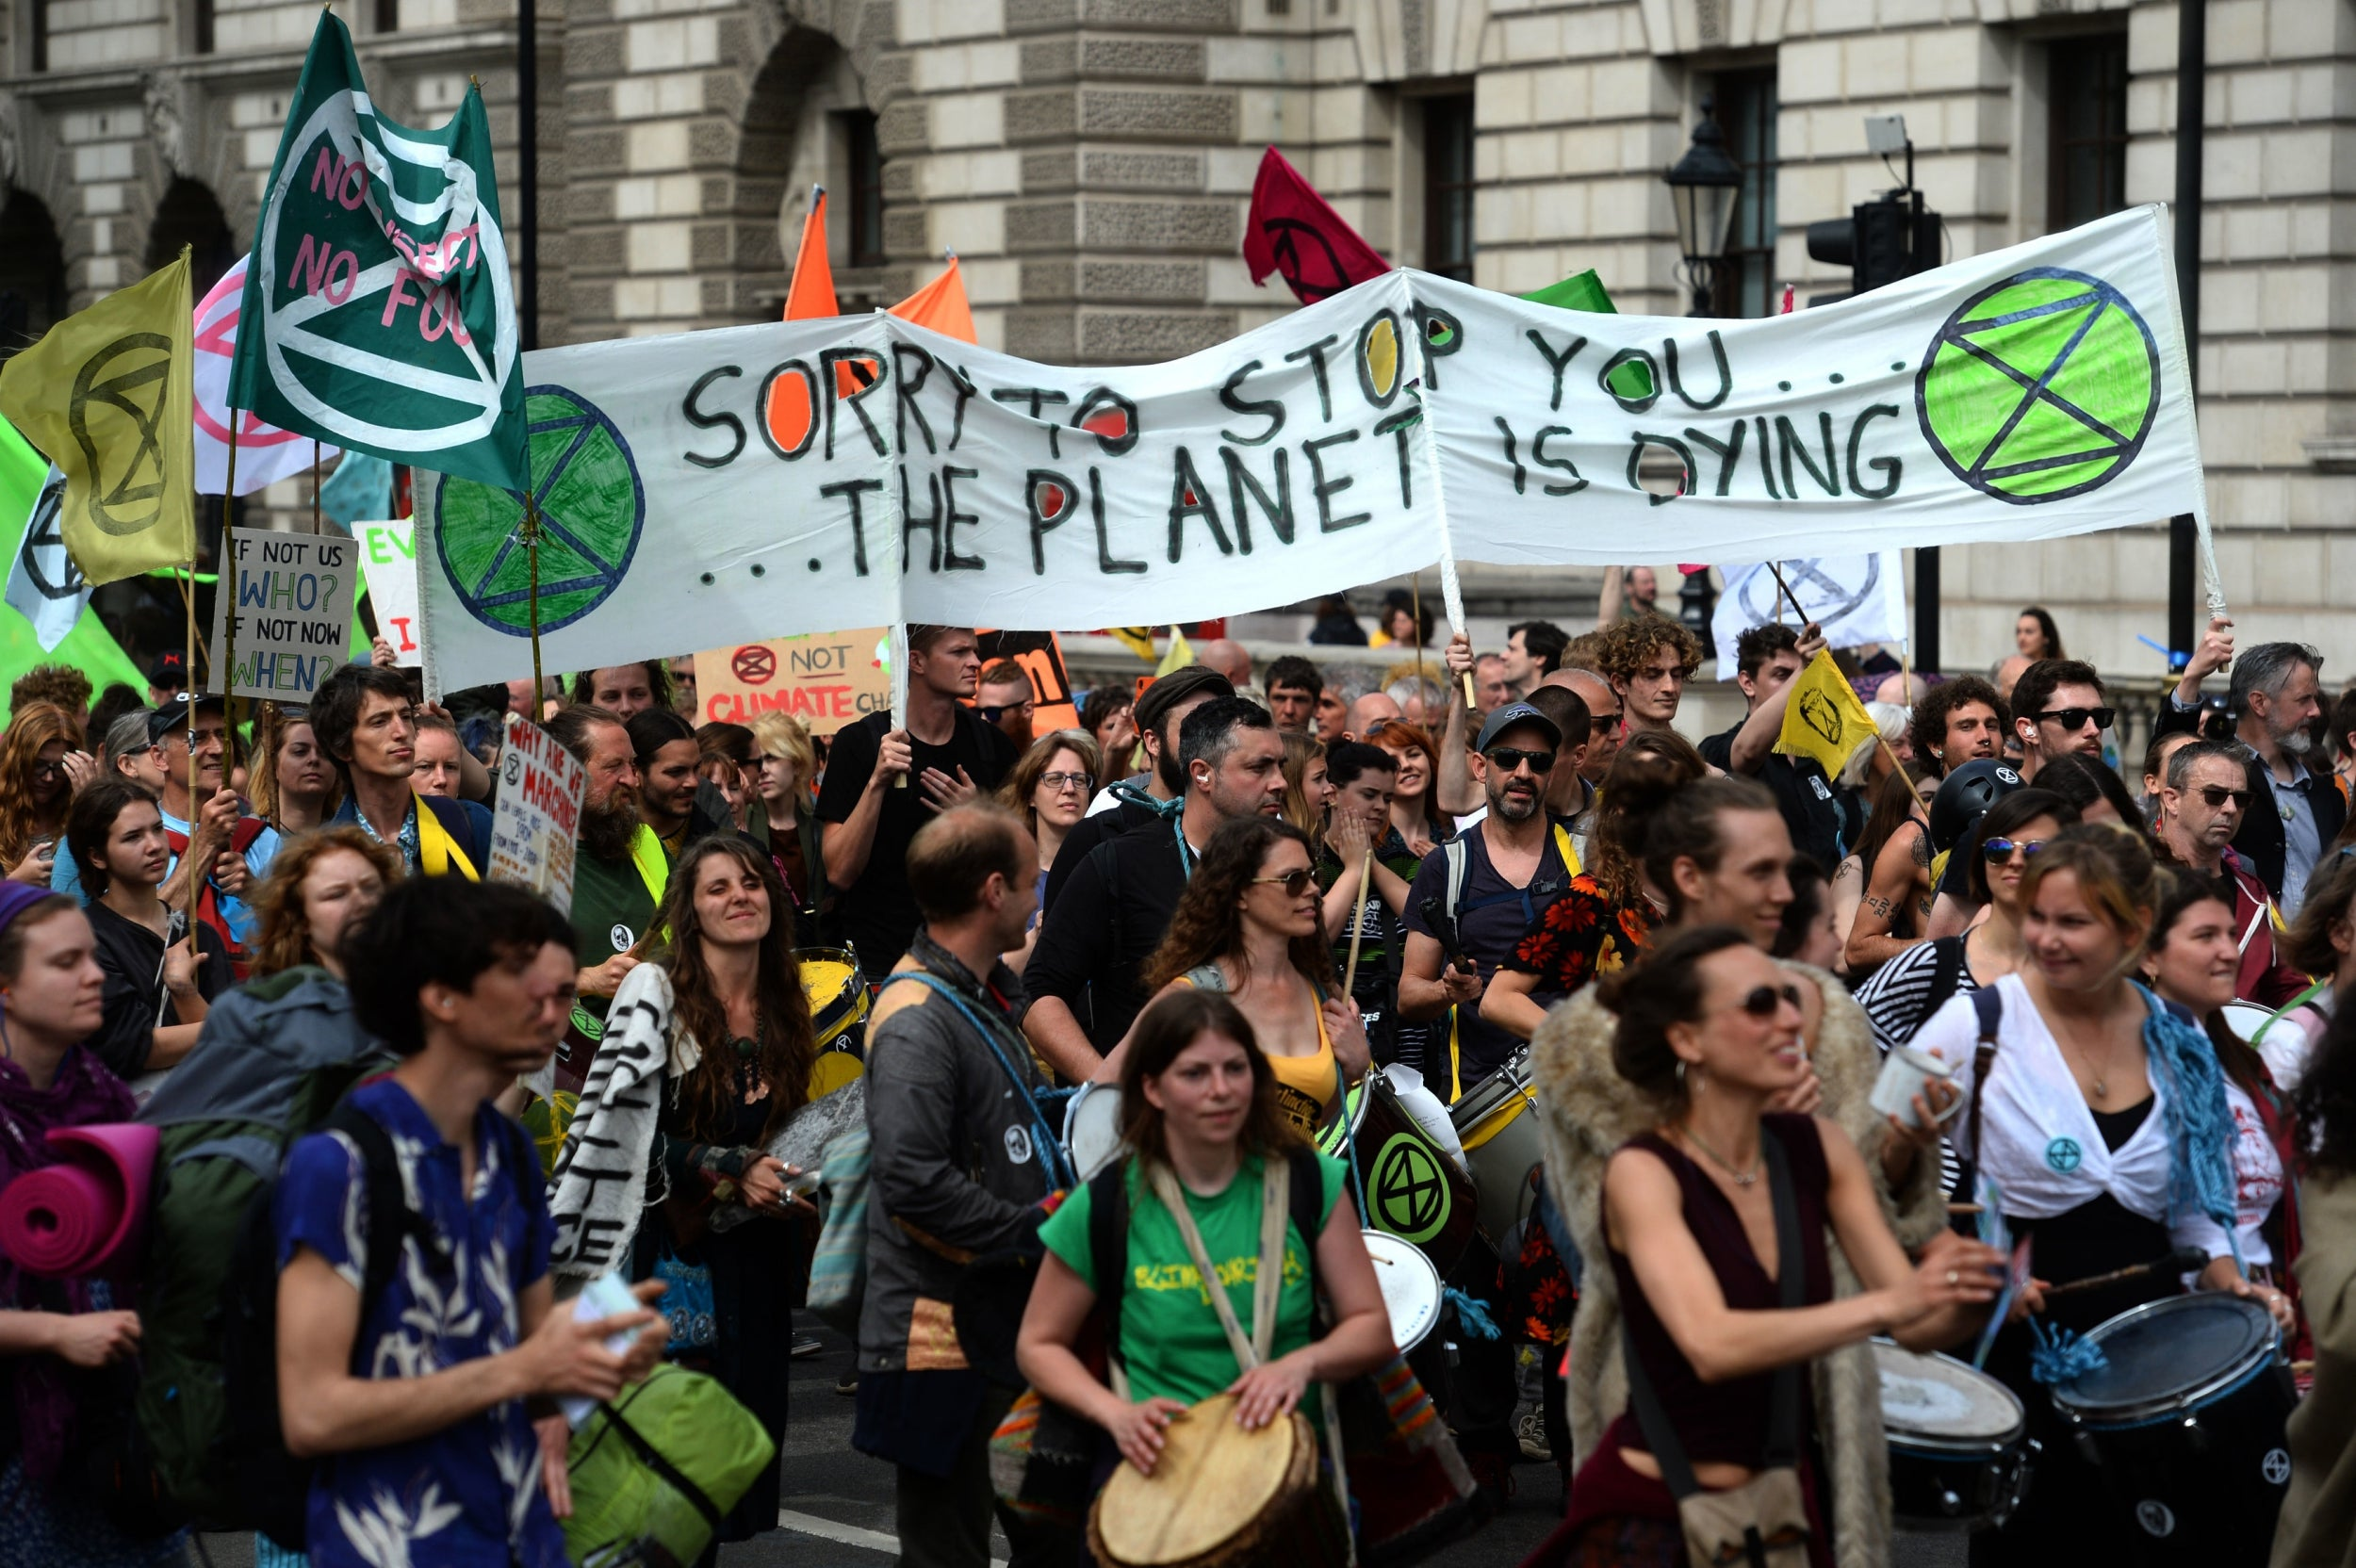 Glastonbury 2019: Extinction Rebellion to stage climate change protest at festival